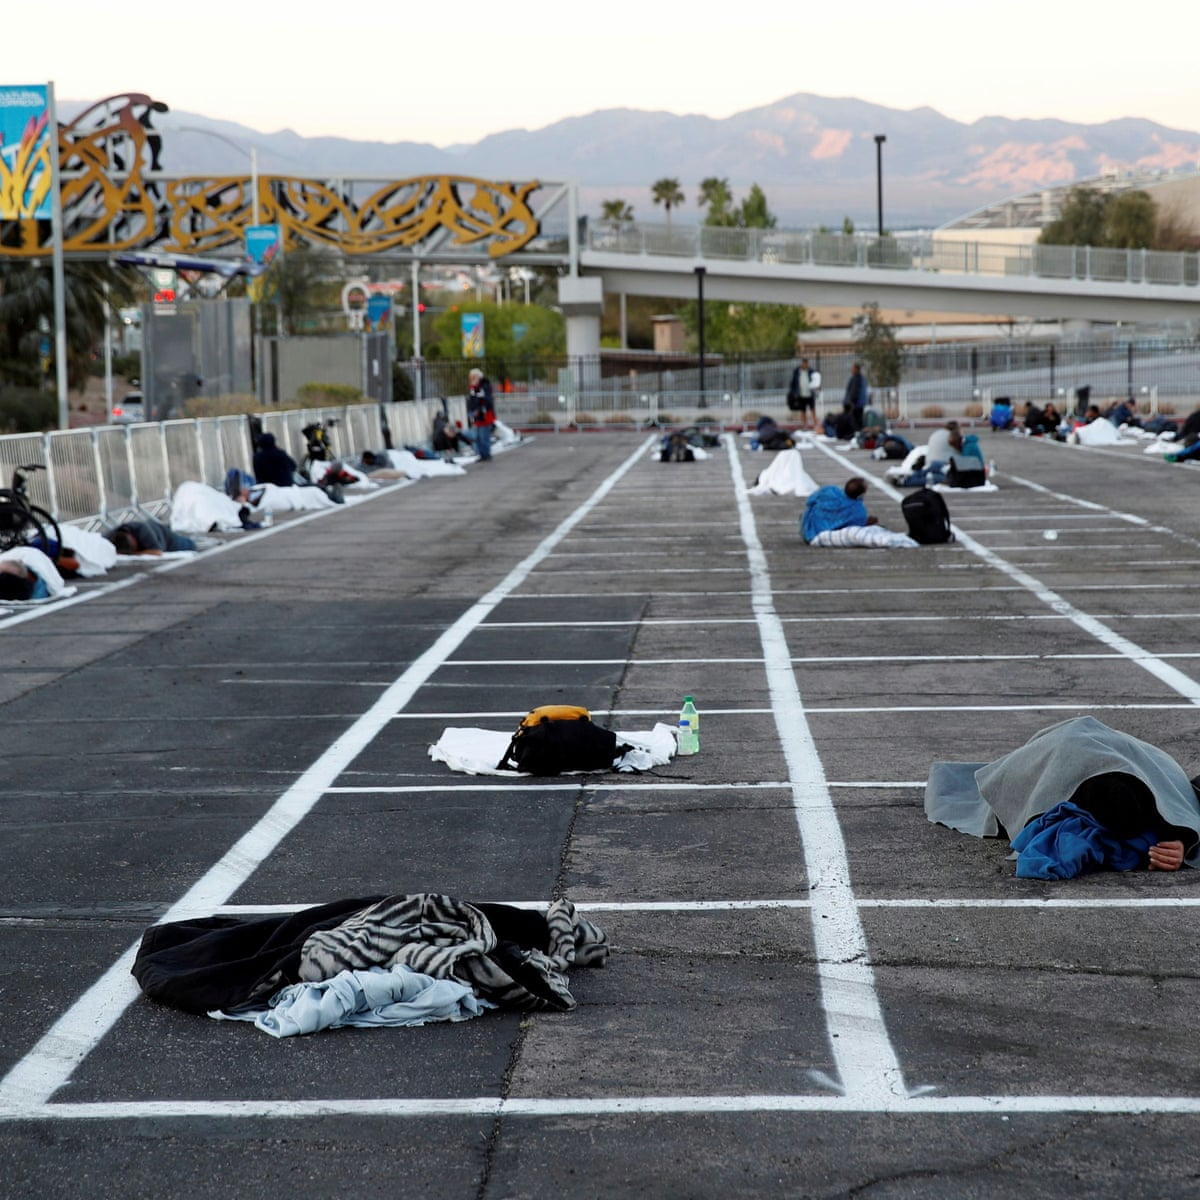 Las Vegas Parking Lot Turned Into Homeless Shelter With Social Distancing Markers Las Vegas The Guardian